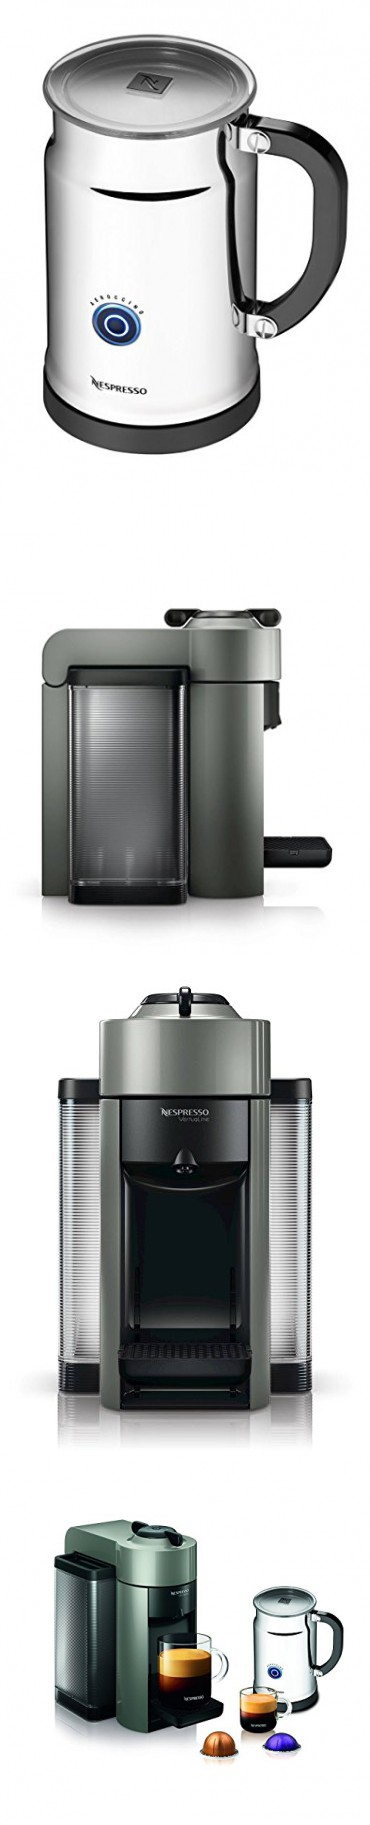 Automatic Off Mode System Coffee & Espresso Maker in Grey